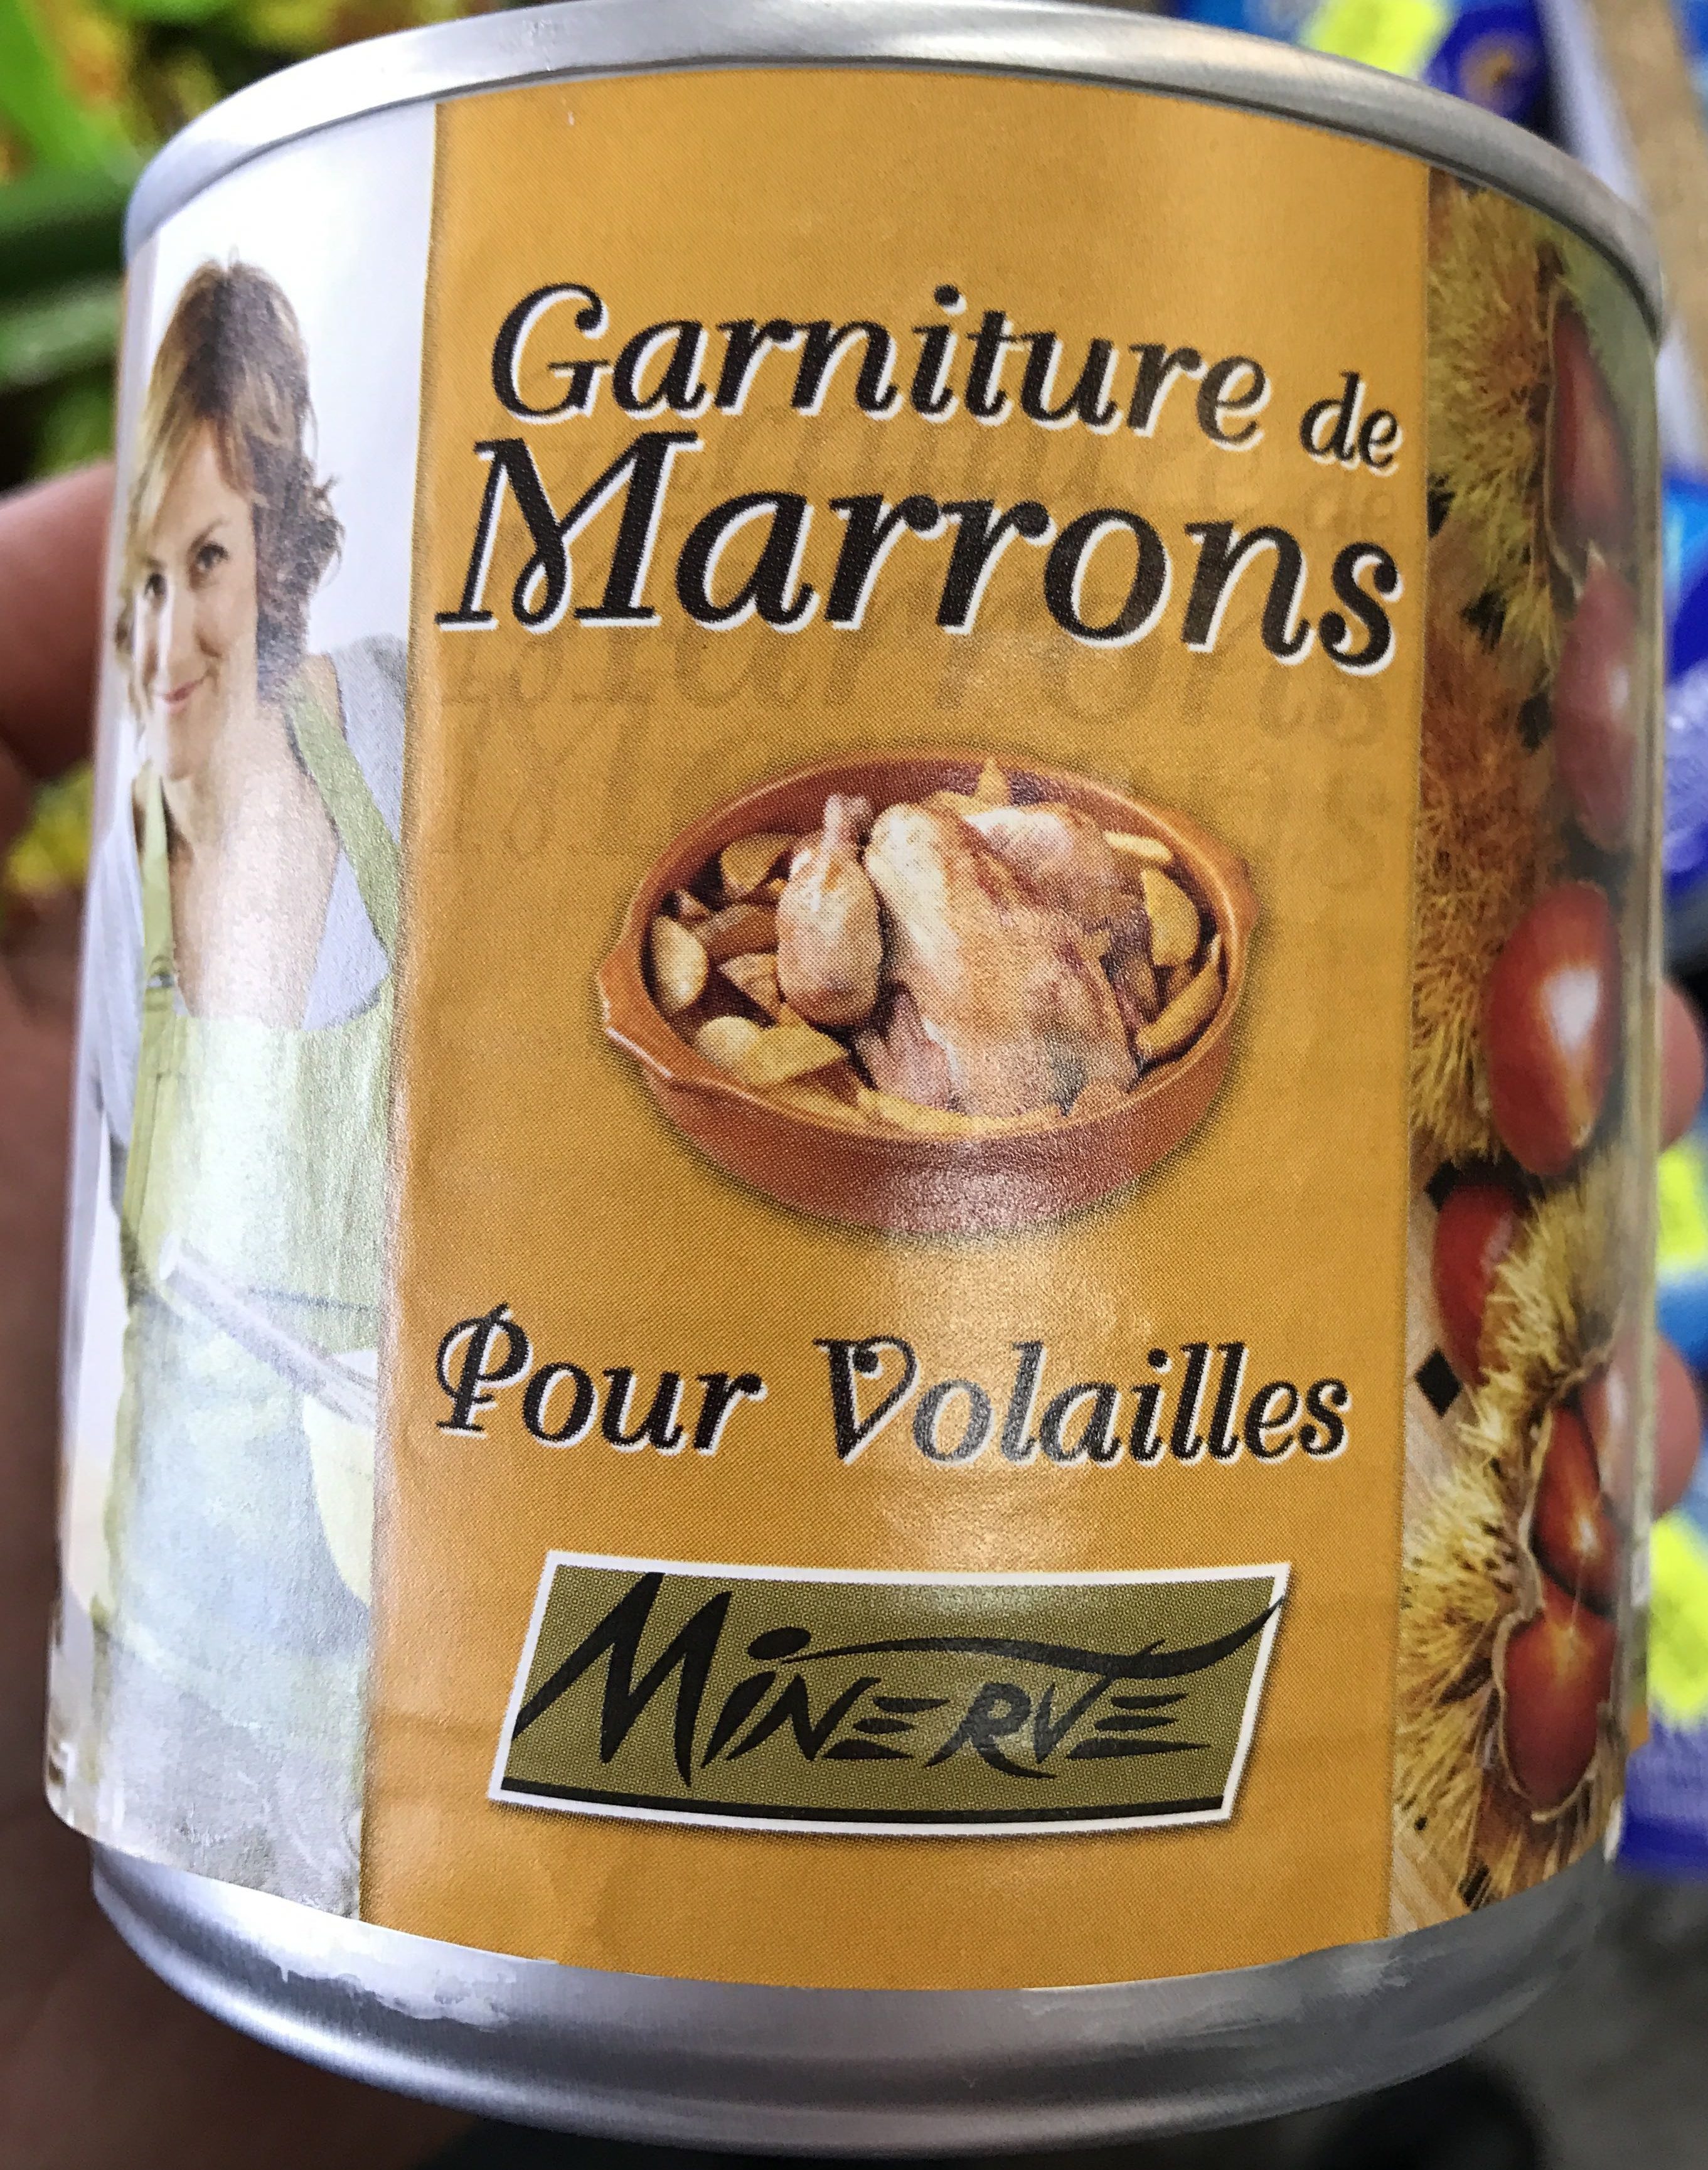 Garniture de Marrons pour Volailles - Product - fr